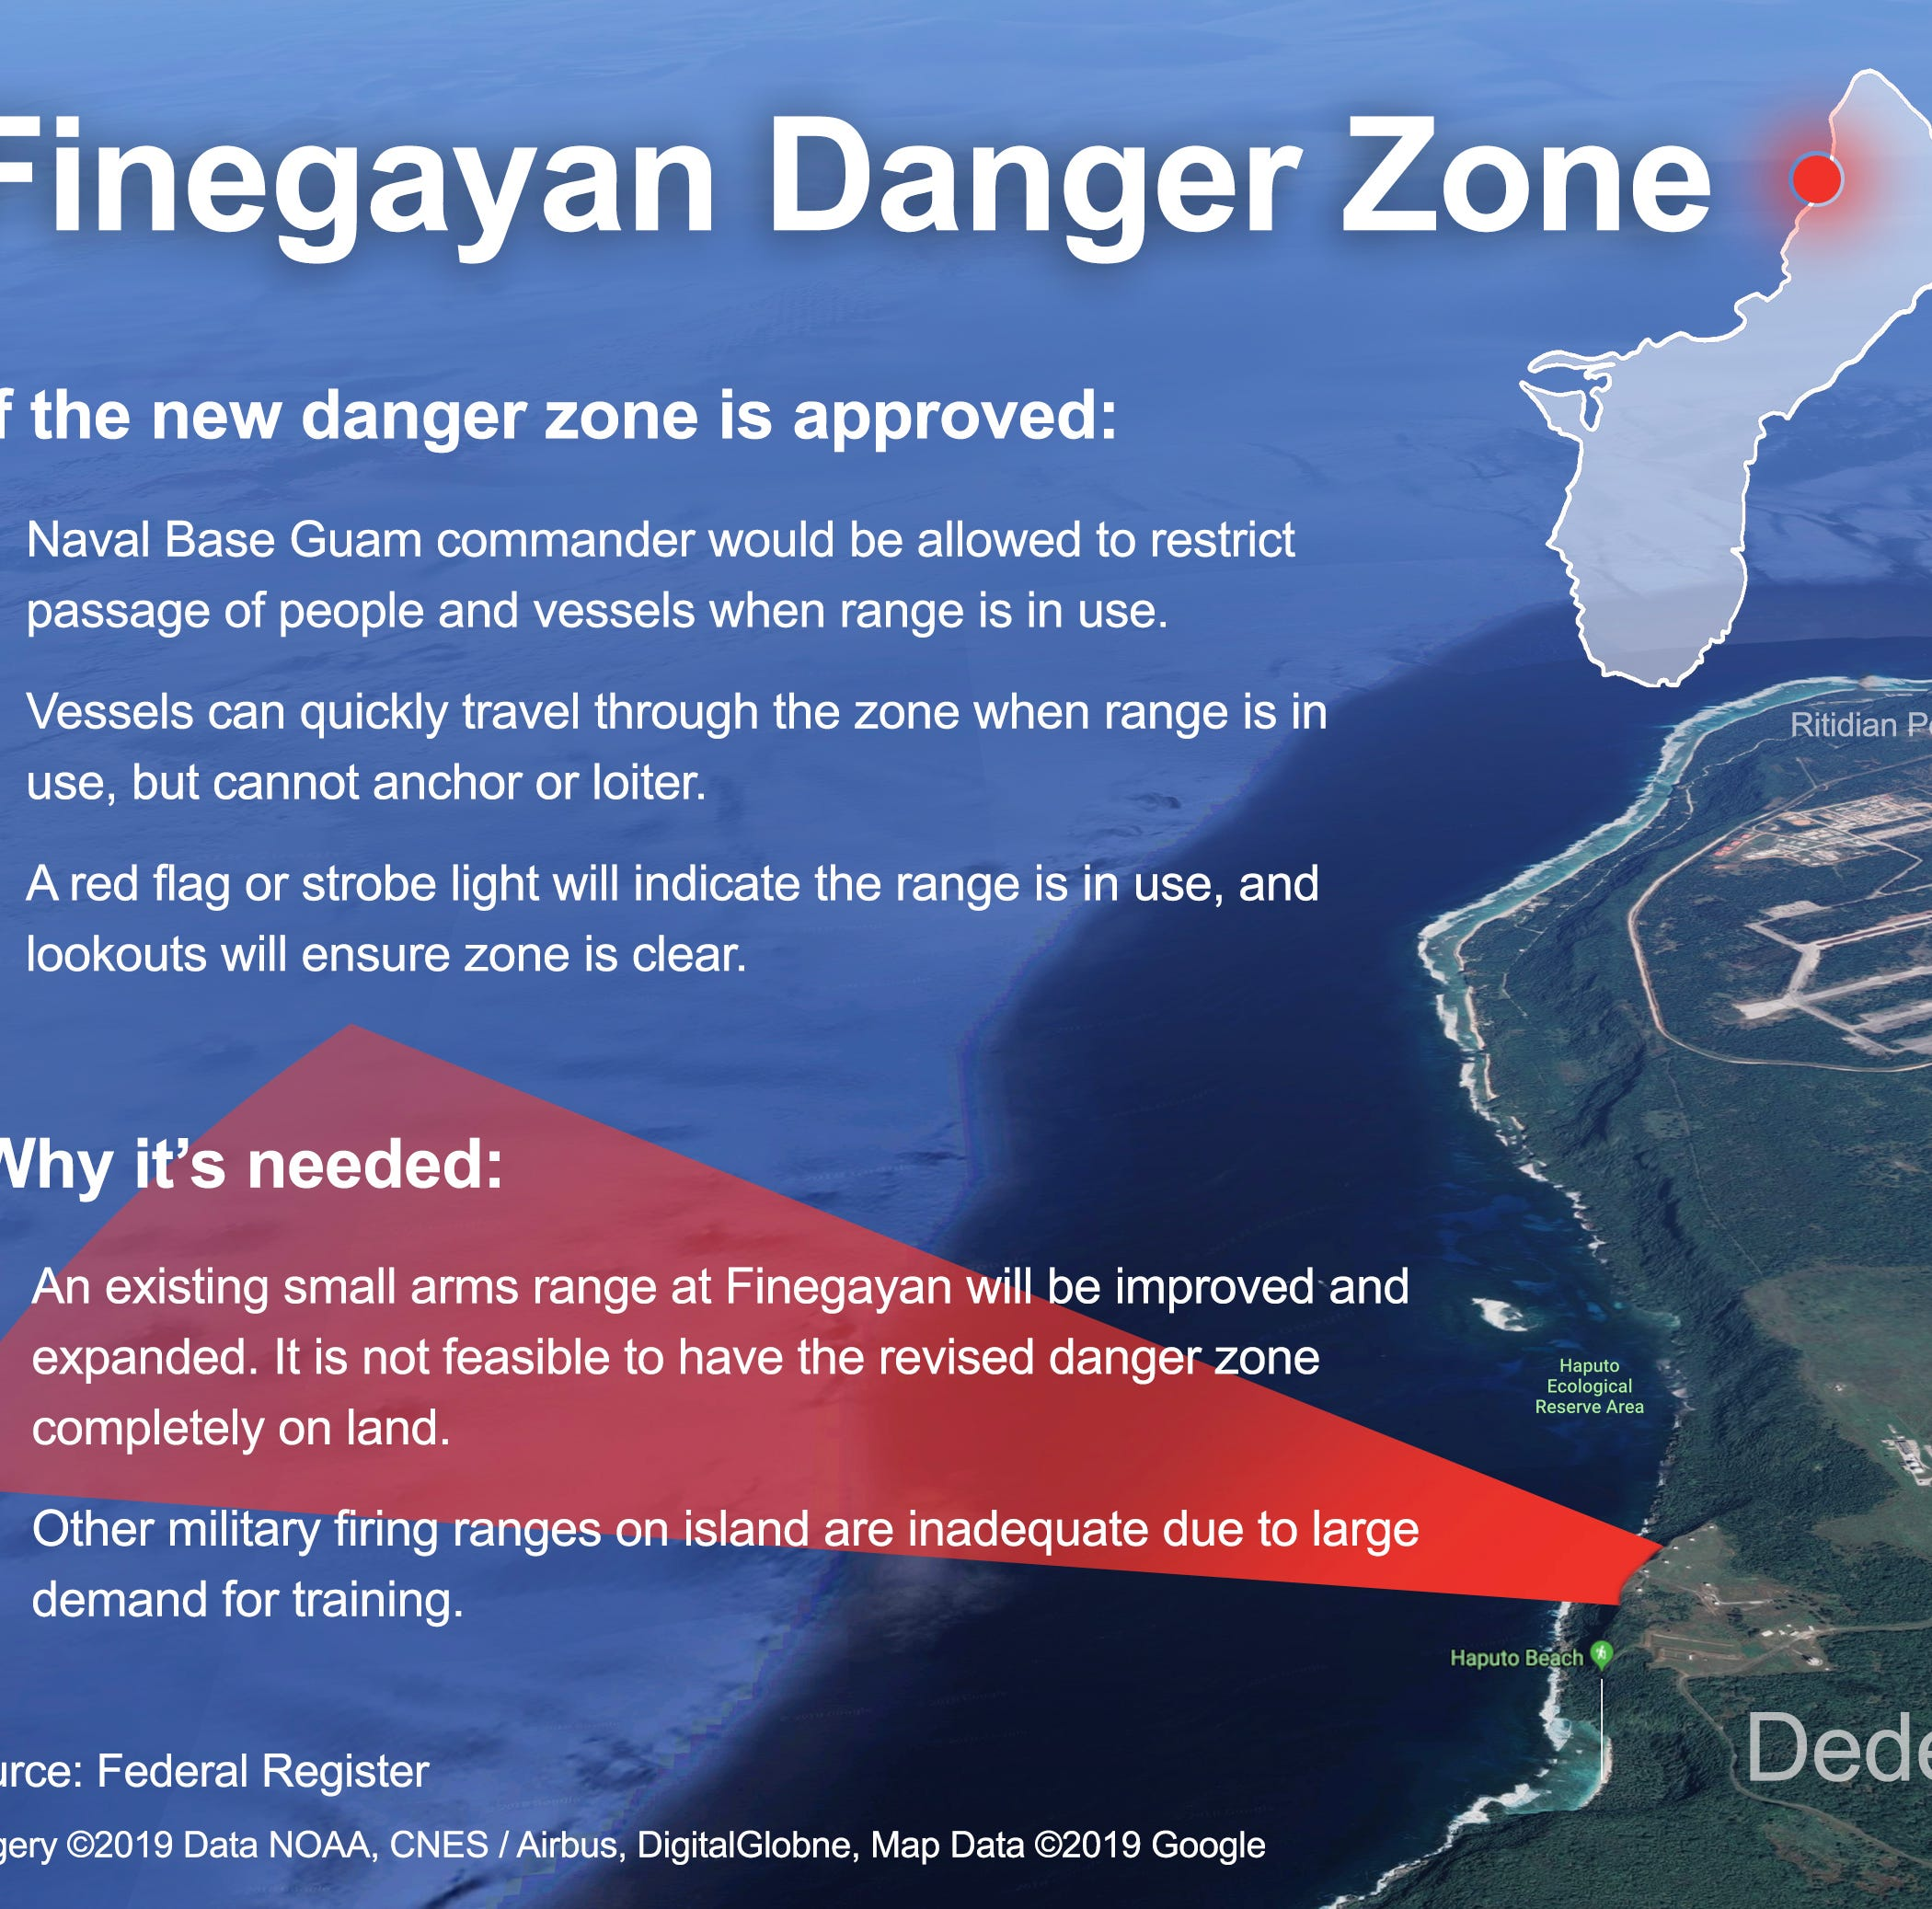 Finegayan danger zone plan draws more concerns